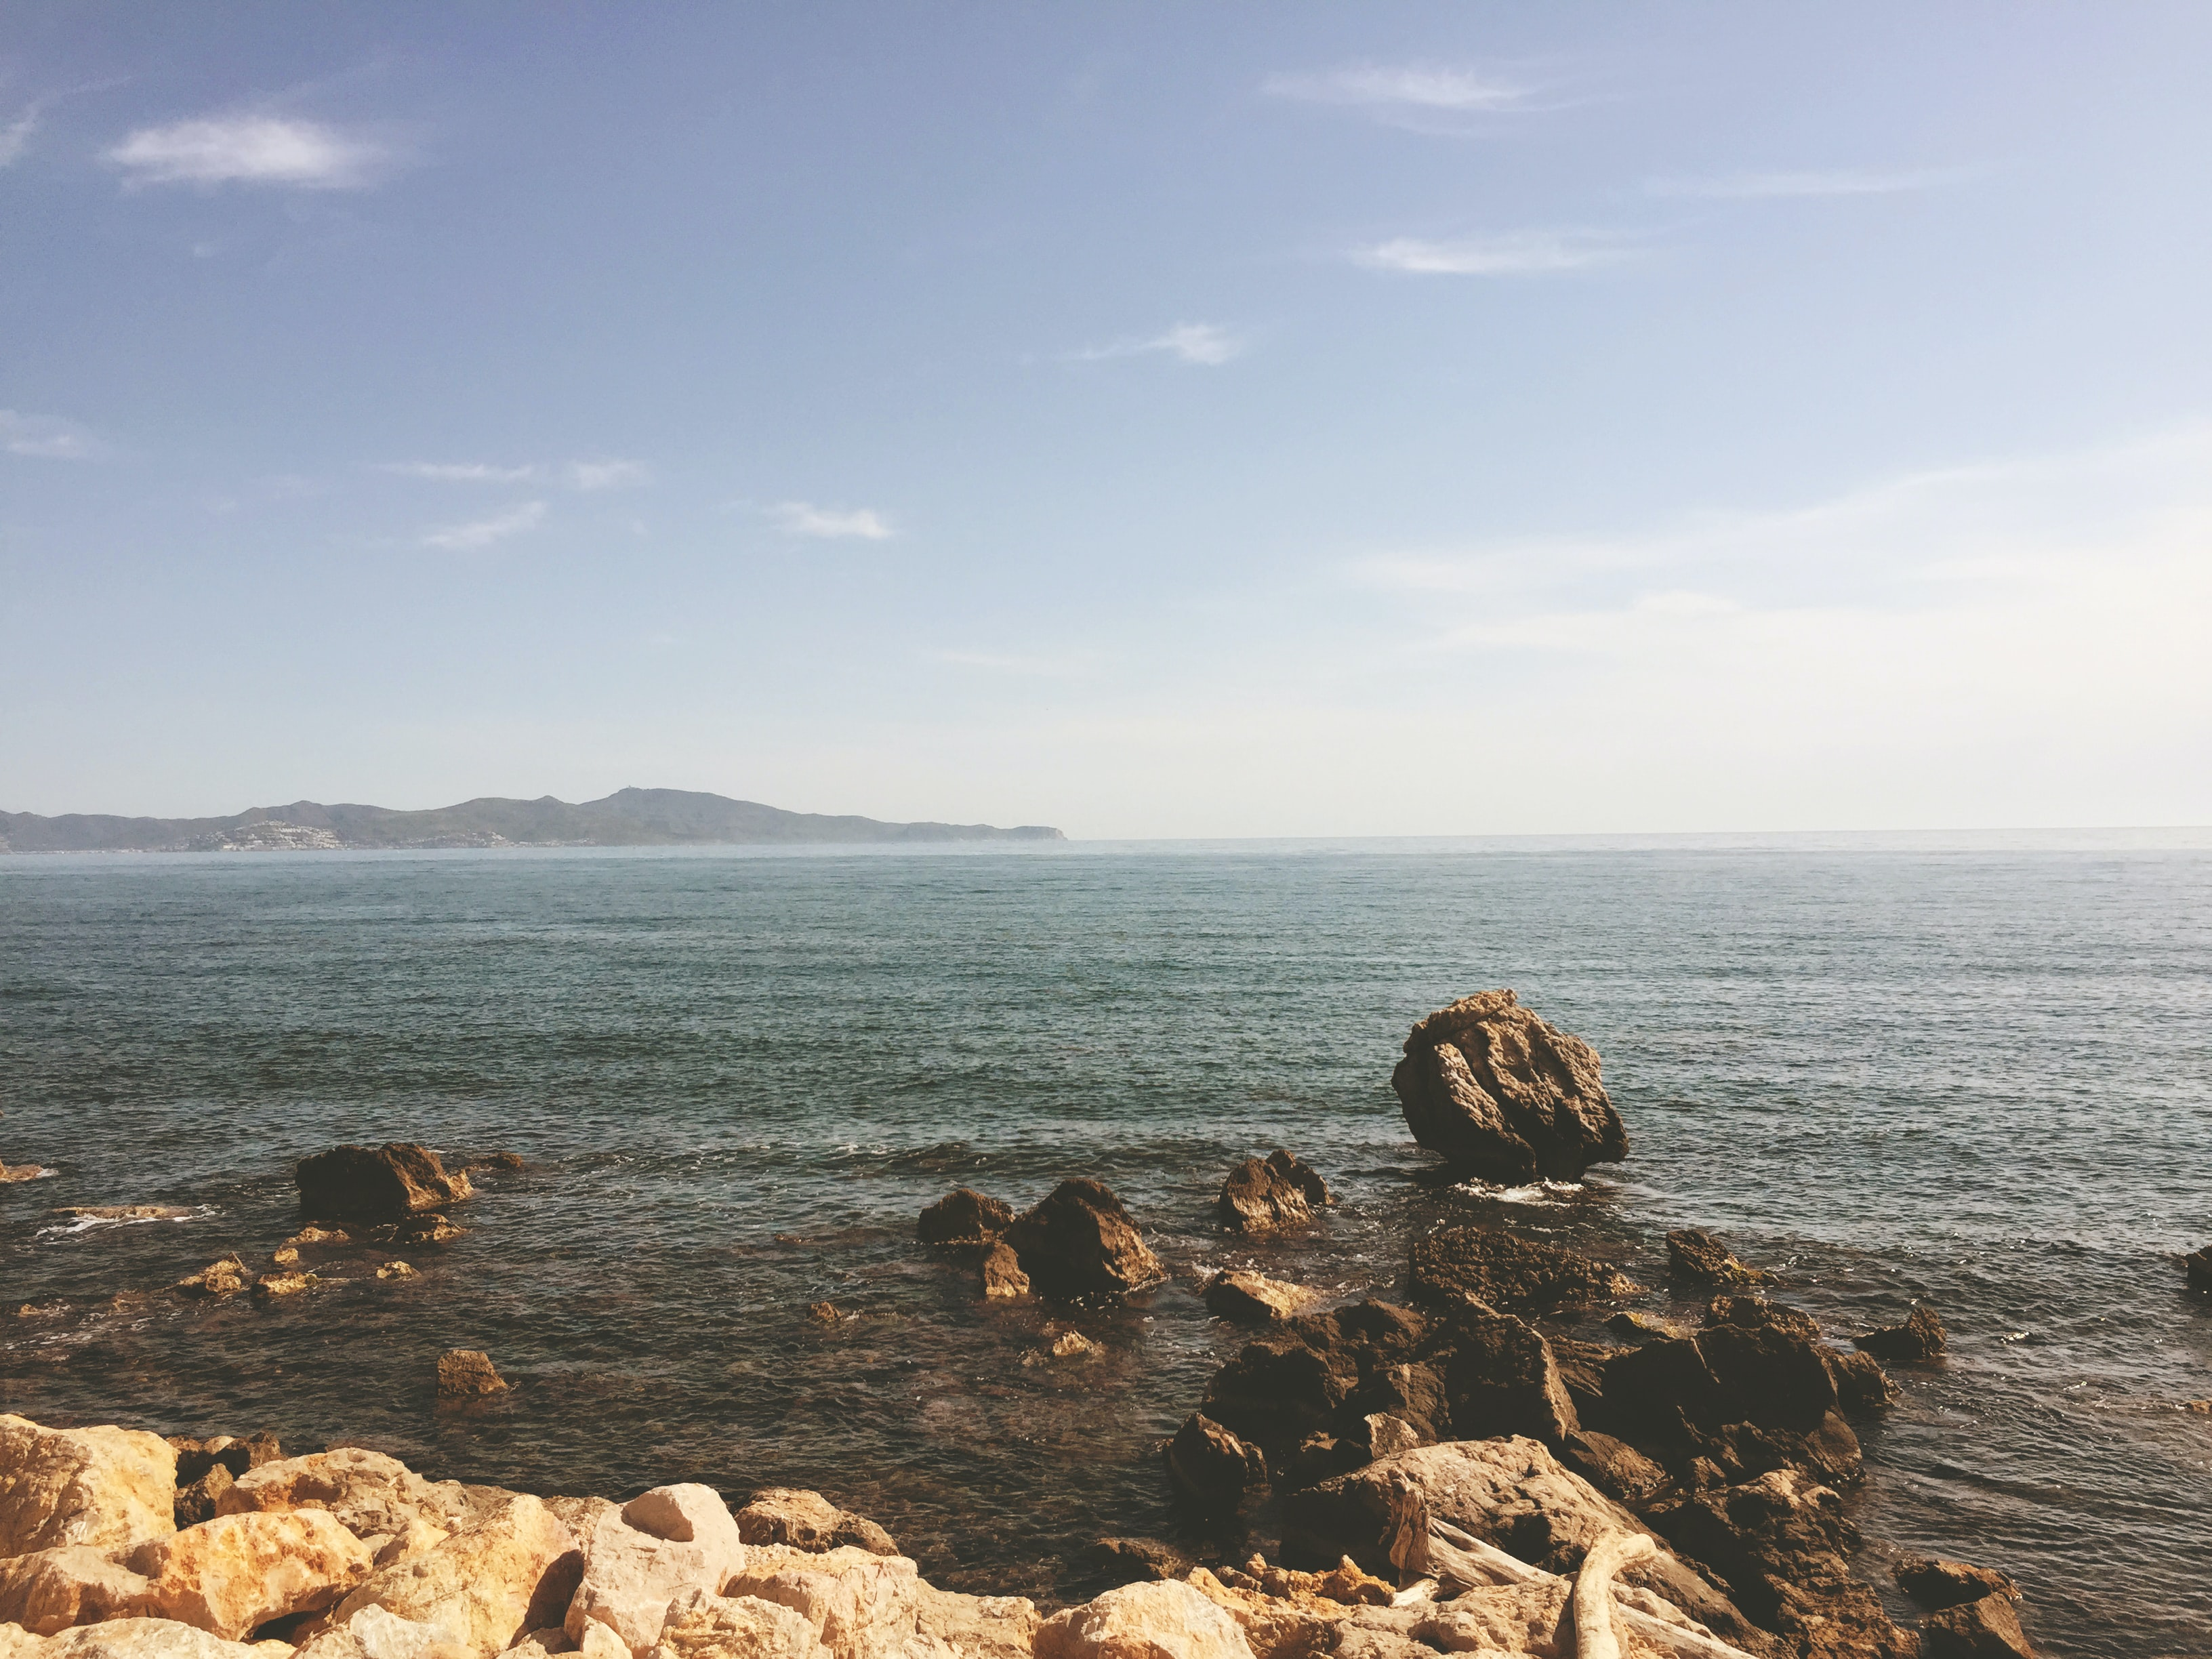 Ocean view from the rocky shoreline